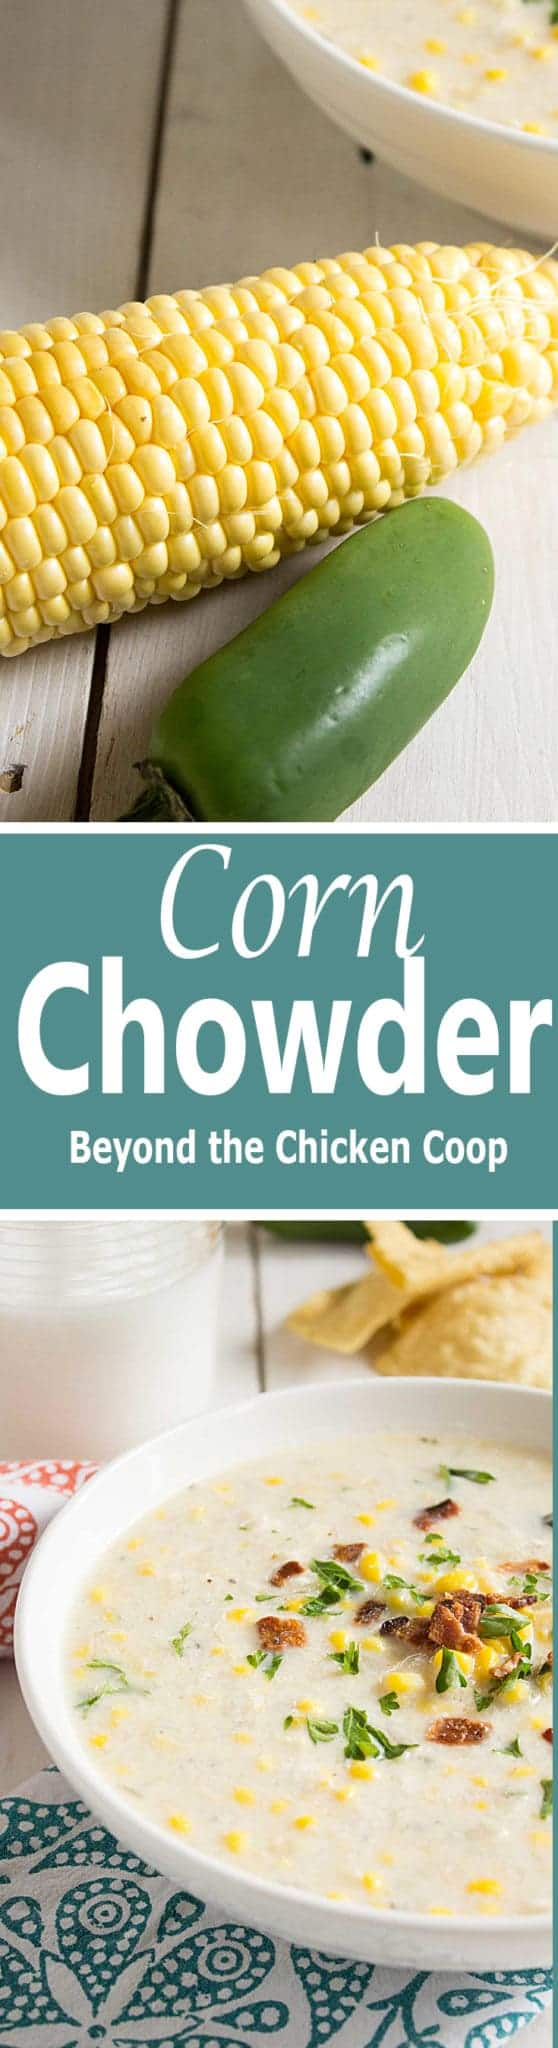 Make full use of fresh corn in this corn chowder. beyondthechickencoop.com